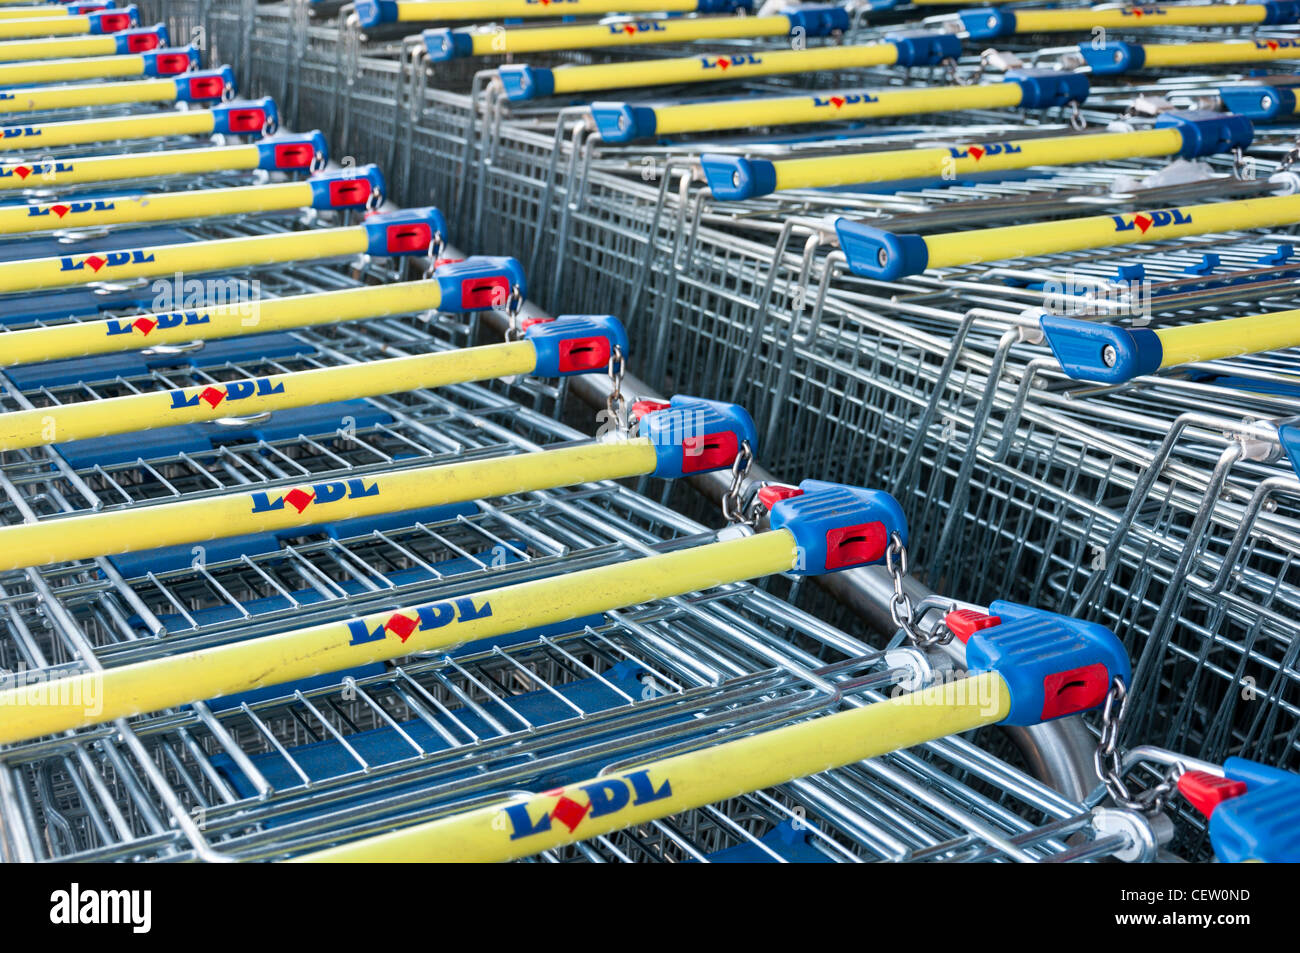 Lidl Supermarket Shopping Trolleys Stock Photo 43575321-1218